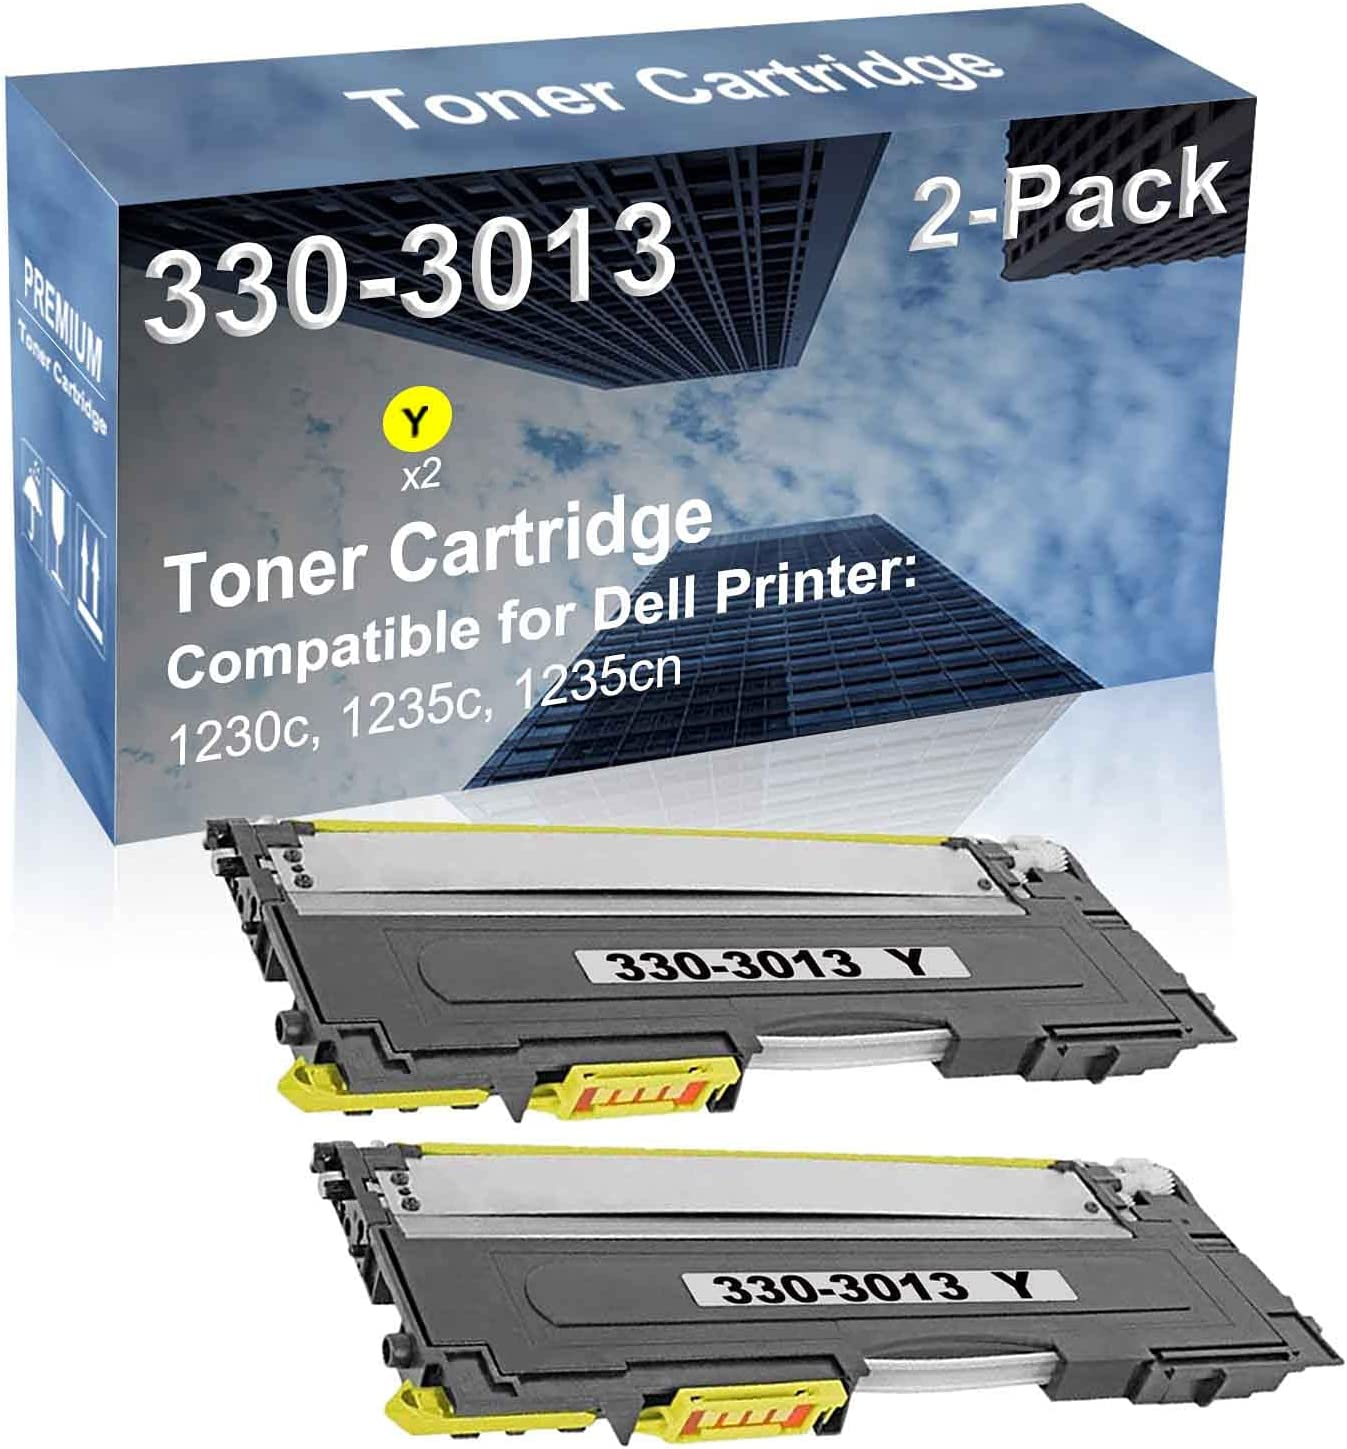 2-Pack (Yellow) Compatible High Yield 330-3013 Laser Printer Toner Cartridge Used for Dell 1230c, 1235c, 1235cn Printer